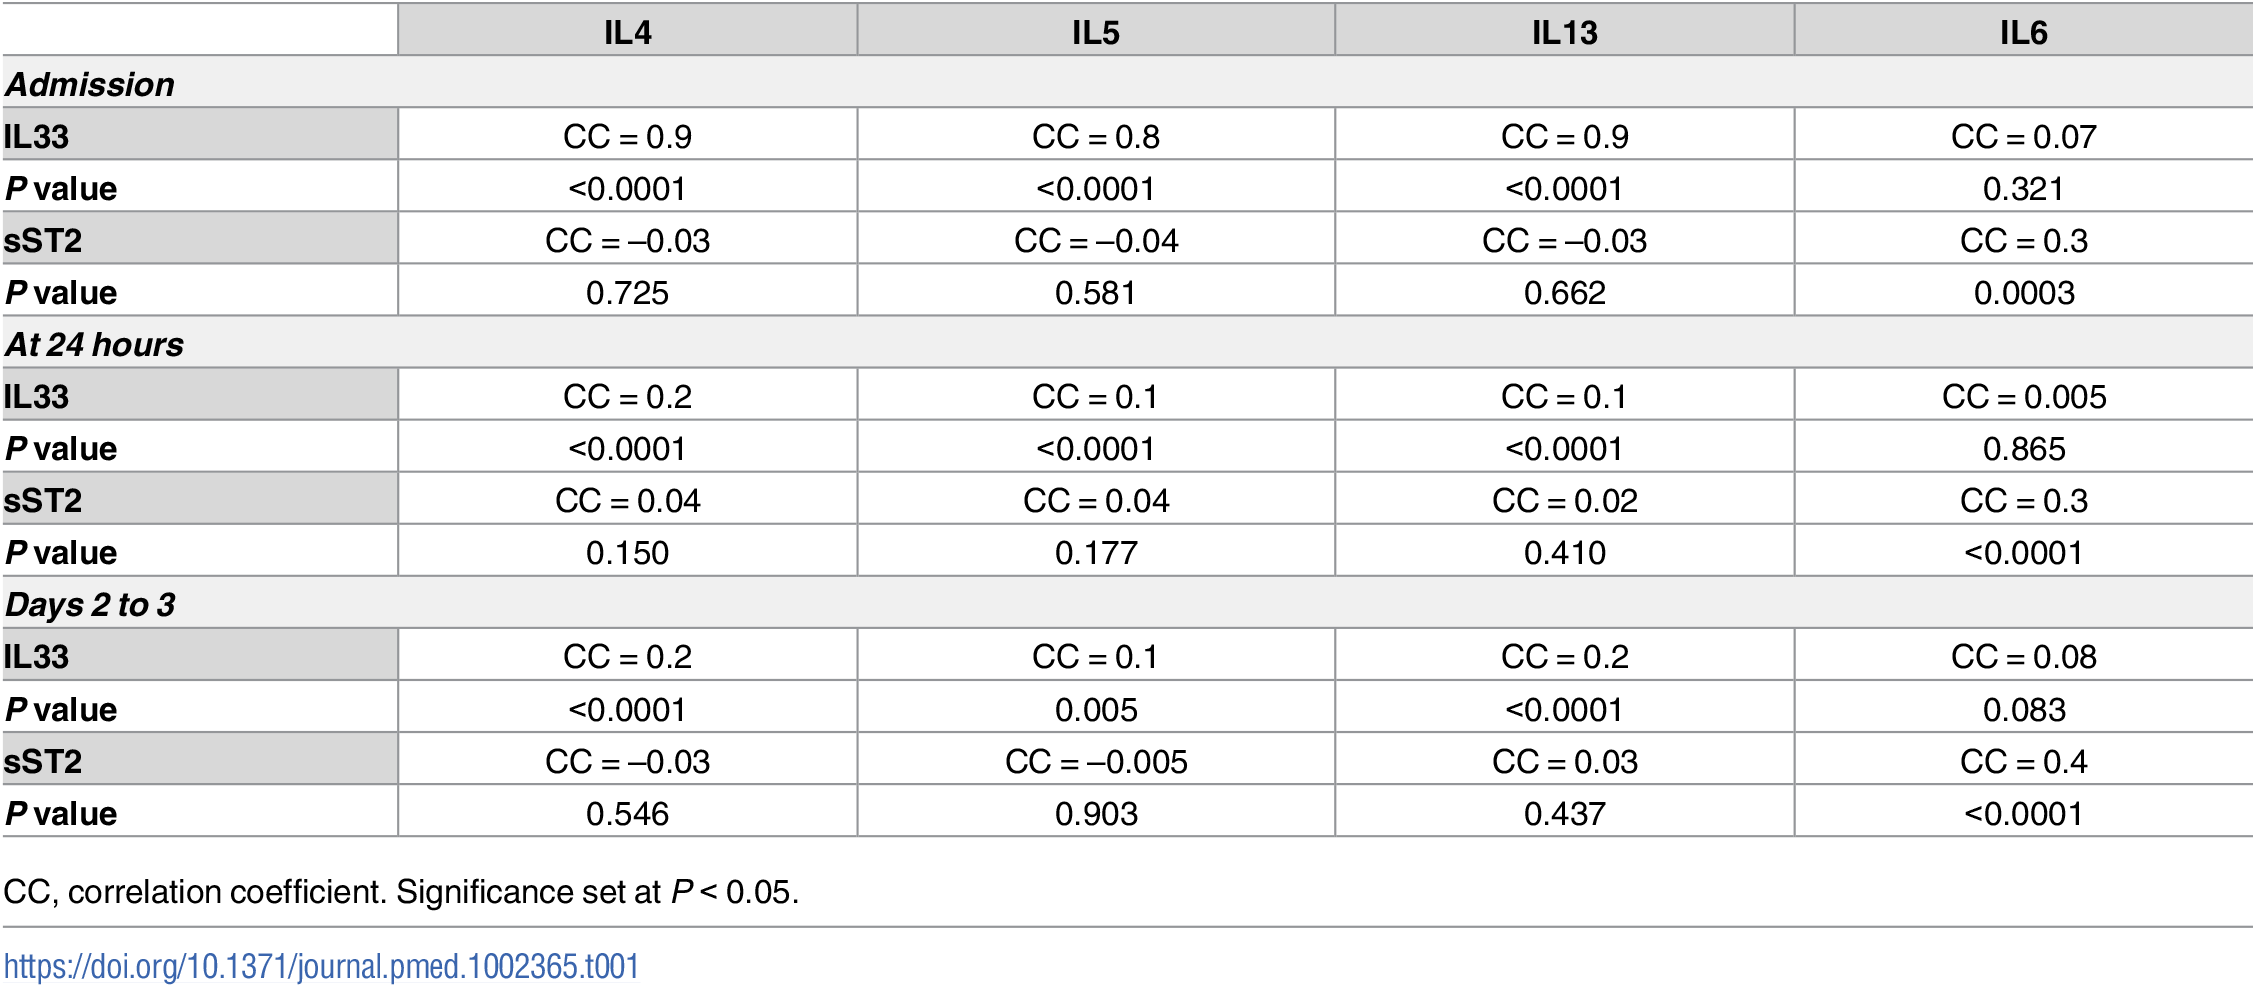 Correlations of circulating interleukin (IL) 33 and soluble suppression of tumorigenicity (sST2) with type 2 cytokines (IL4, IL5, and IL13) and IL6 in blunt trauma patients (<i>n</i> = 472, all survivors) upon admission, at 24 hours, and days 2 to 3 postinjury.